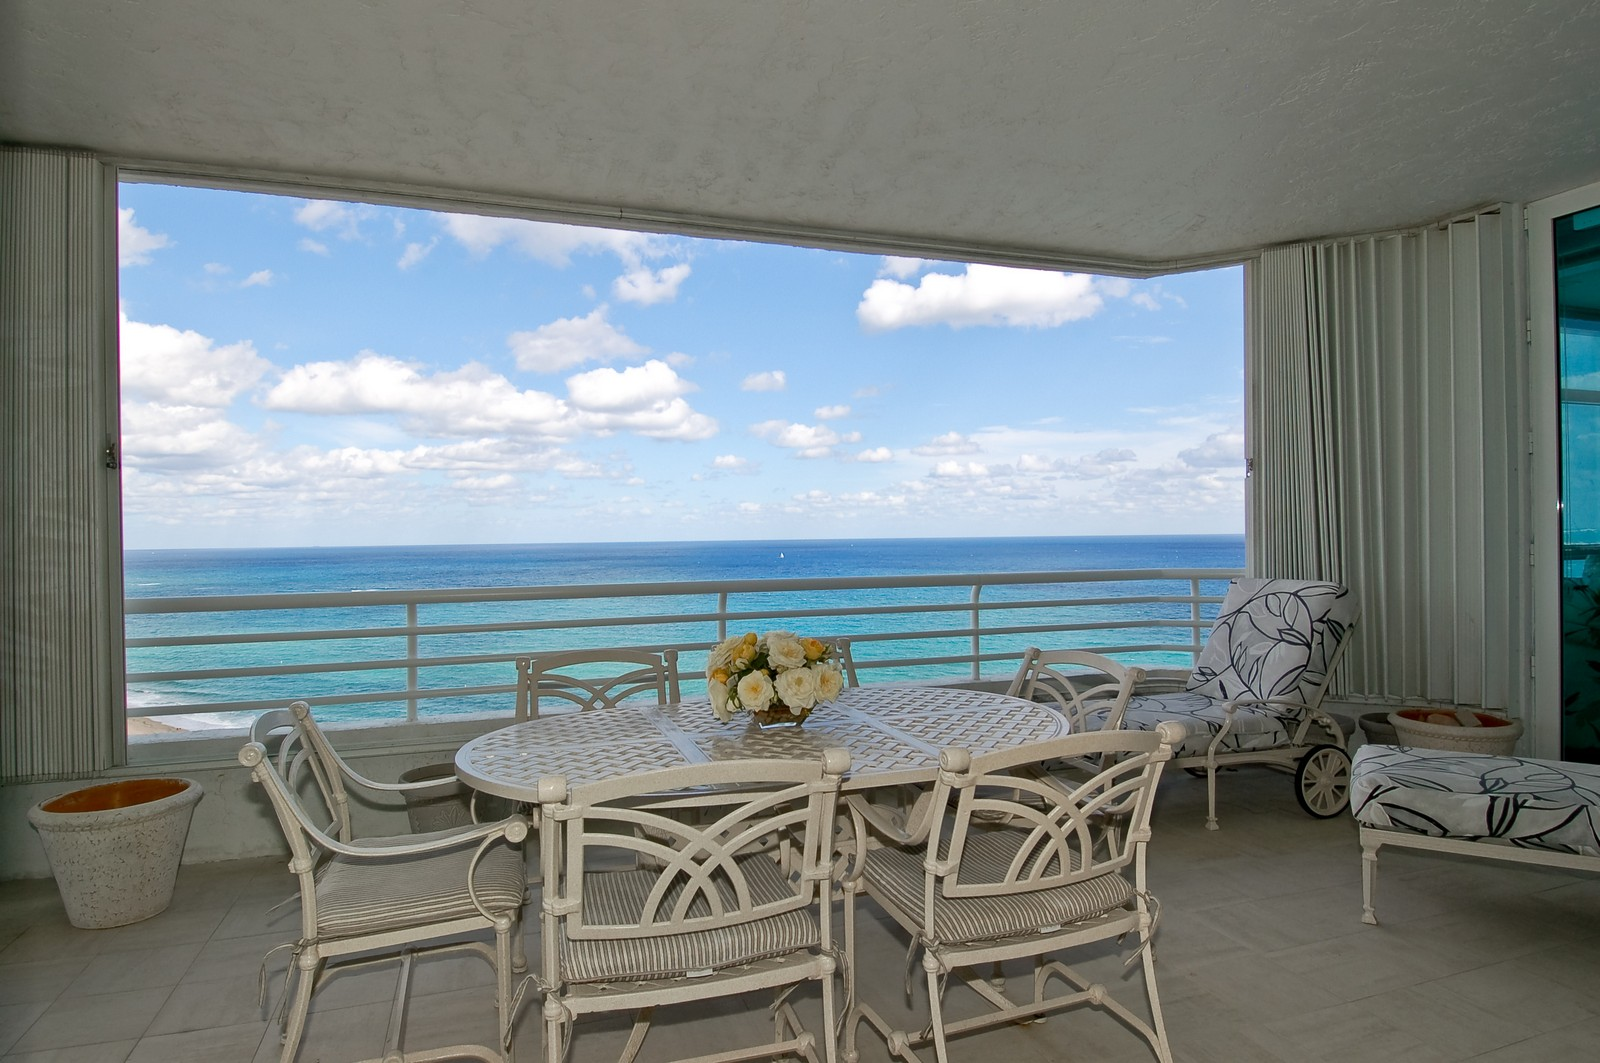 Real Estate Photography - 1700 S Ocean Blvd, 22C, Lauderdale by the Sea, FL, 33062 - OCEAN VIEW FROM LIVING ROOM